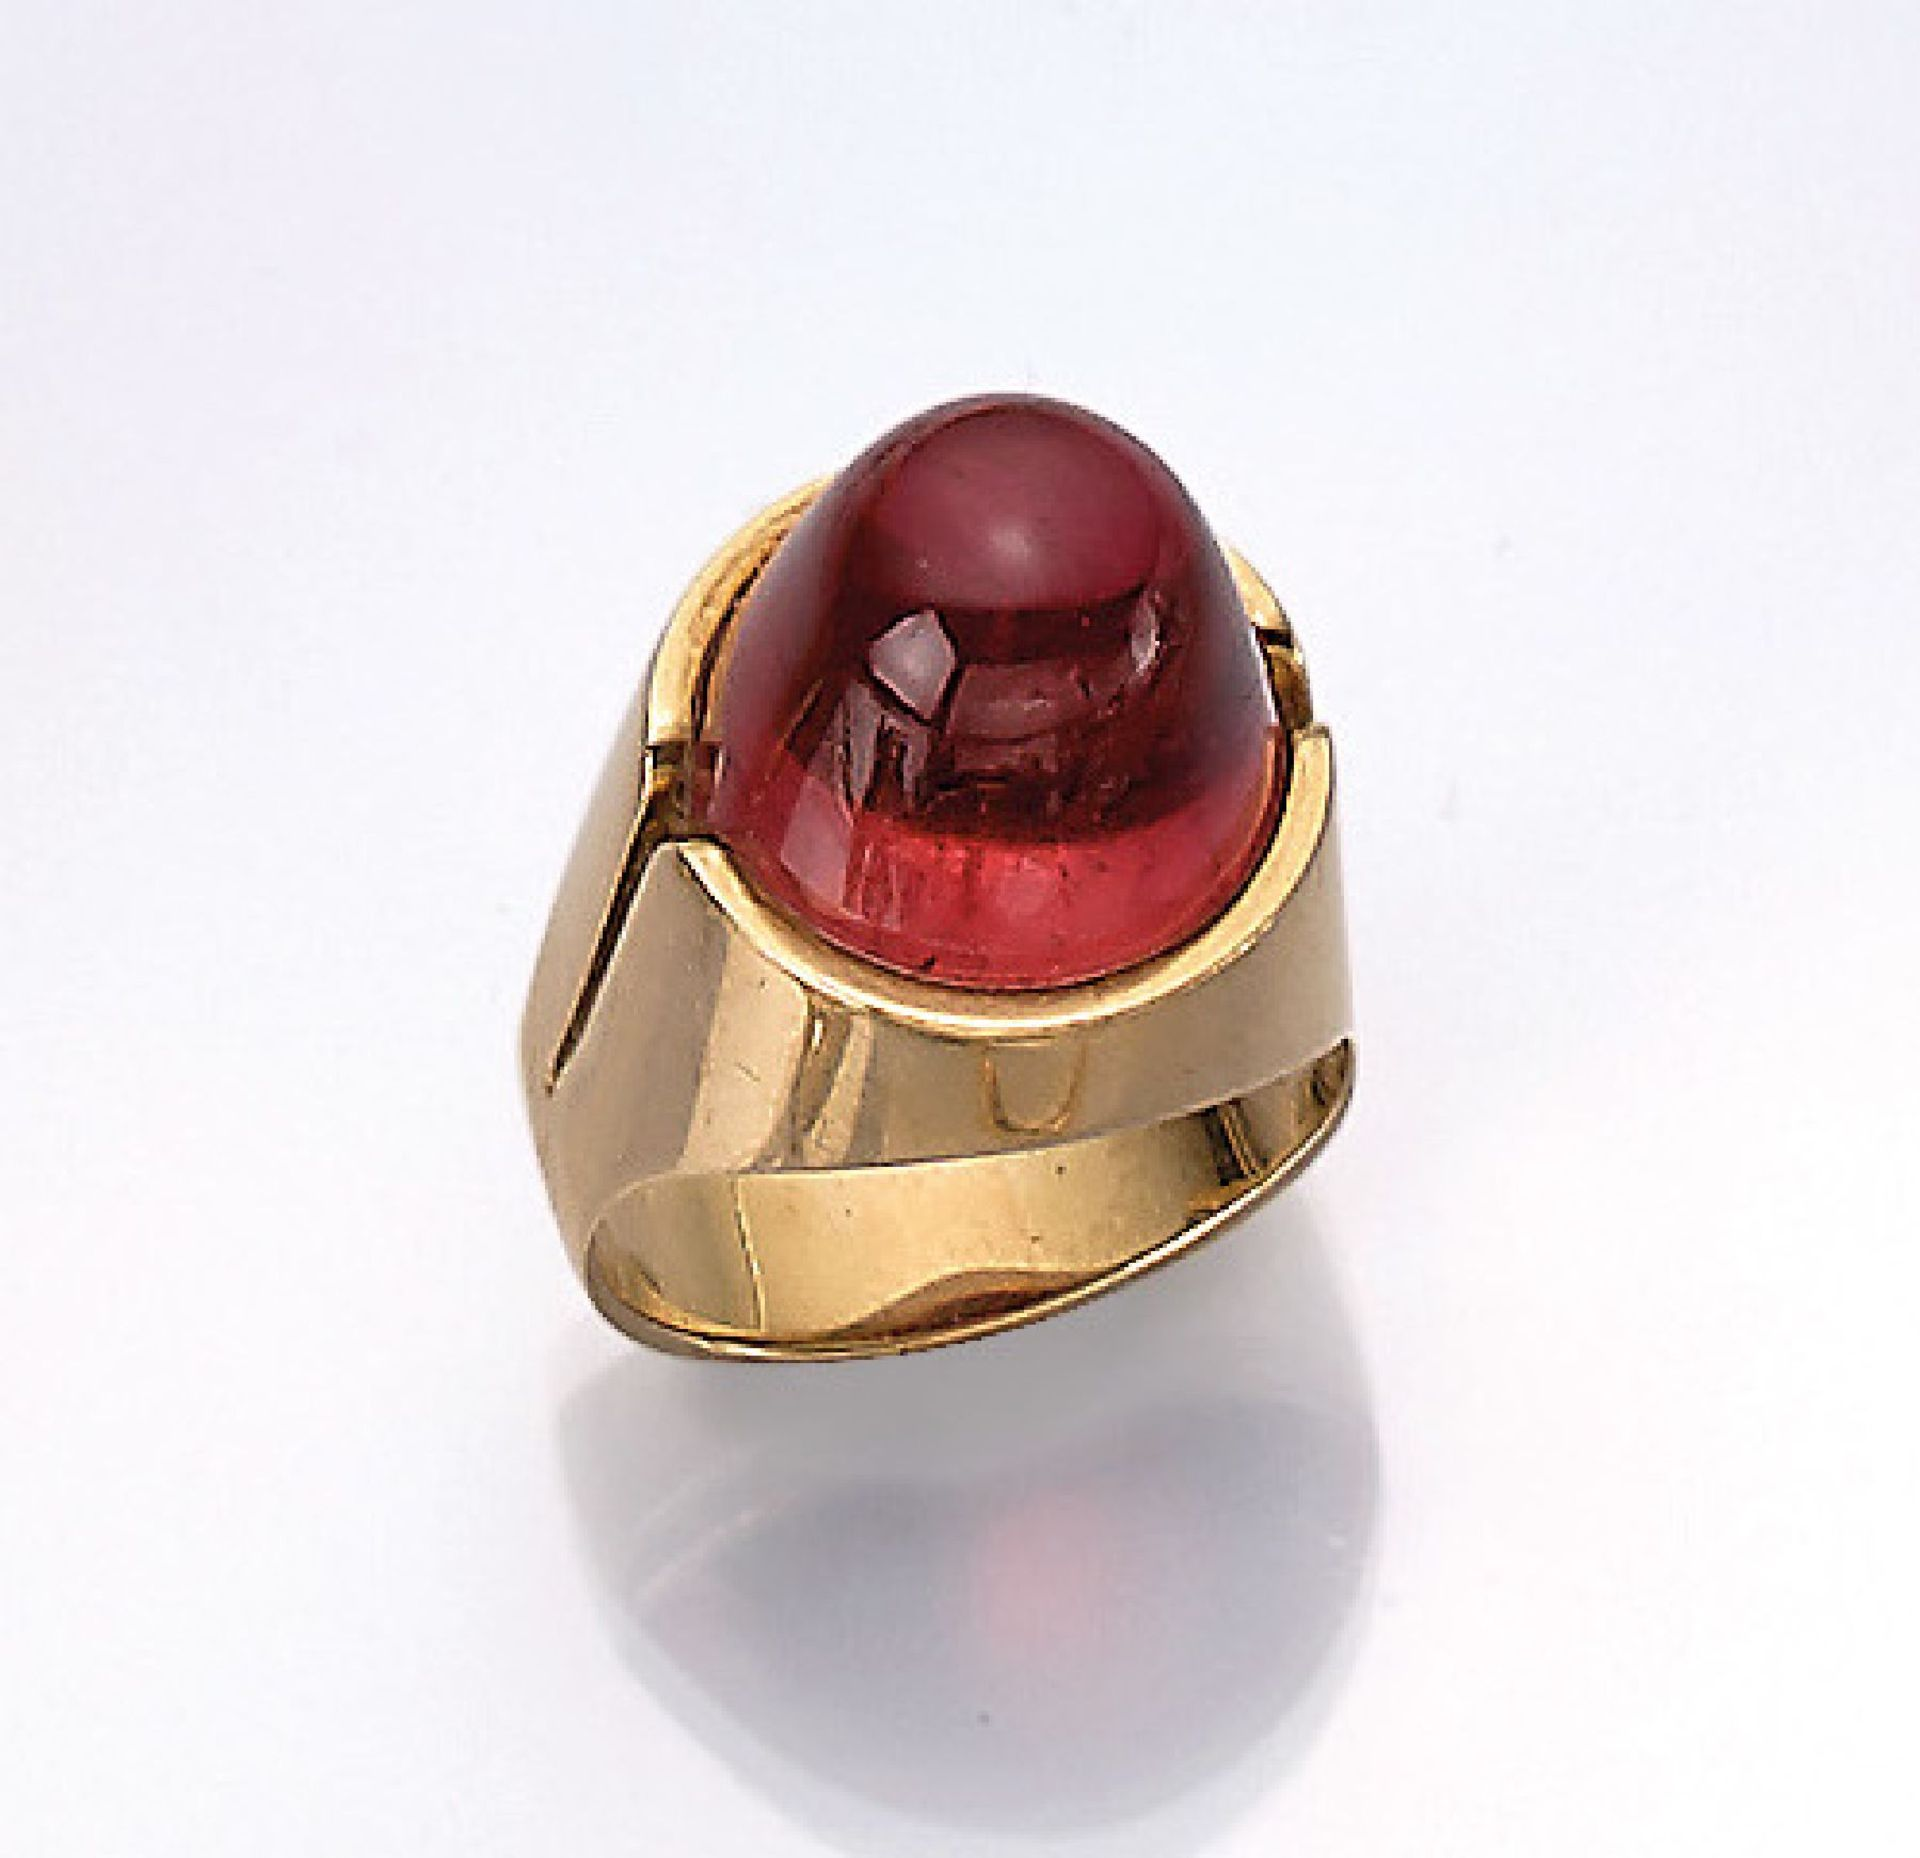 14 kt Gold Ring mit Rubellit, GG 585/000, hoher Rubellitcabochon ca. 8.50 ct, RW 55, Meistermarke